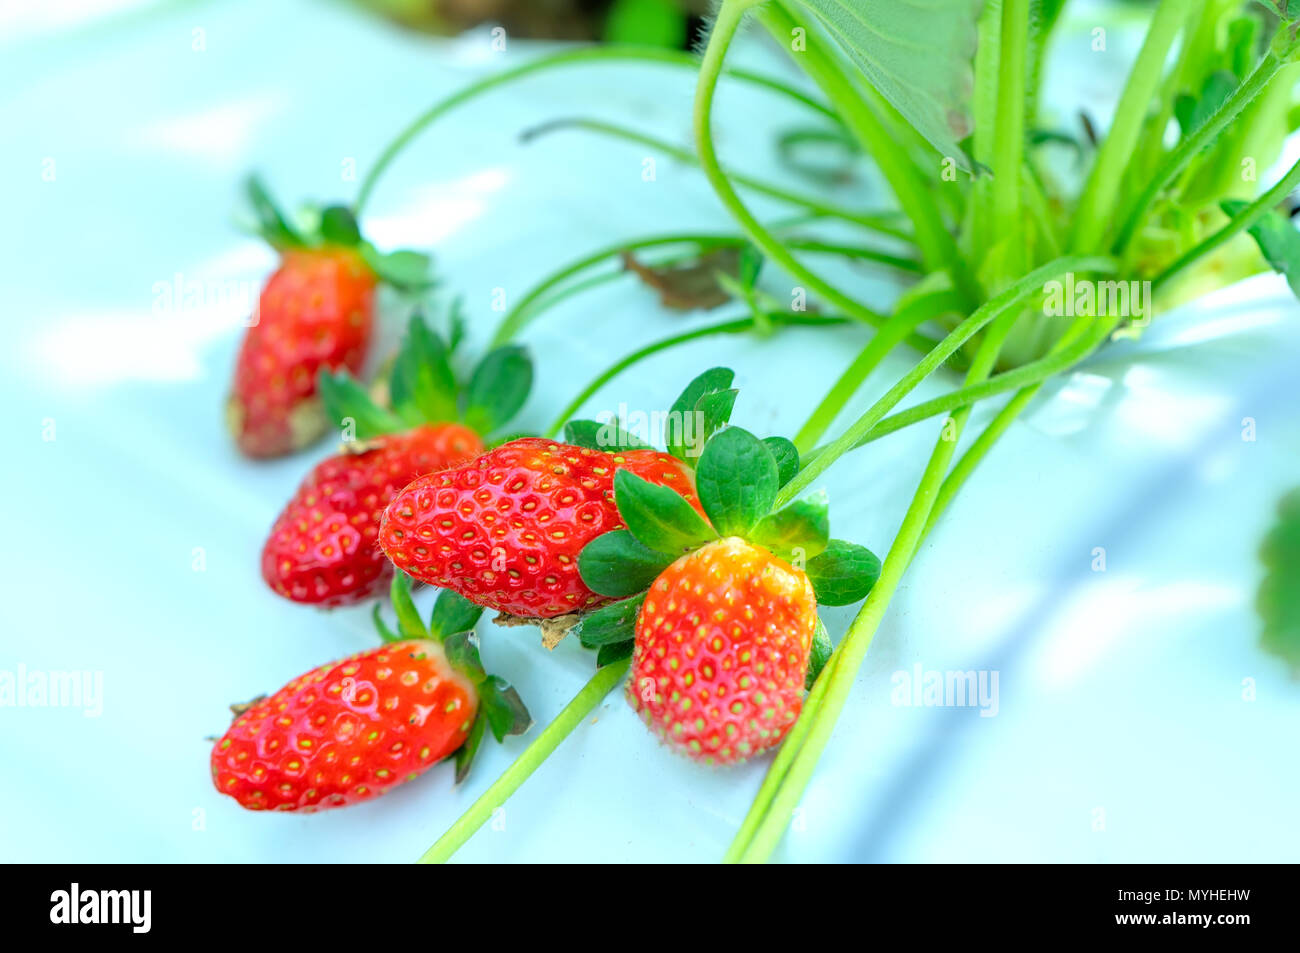 Red ripe strawberries on the rack in the garden. This fruit is rich in vitamin C and minerals beneficial to human health - Stock Image